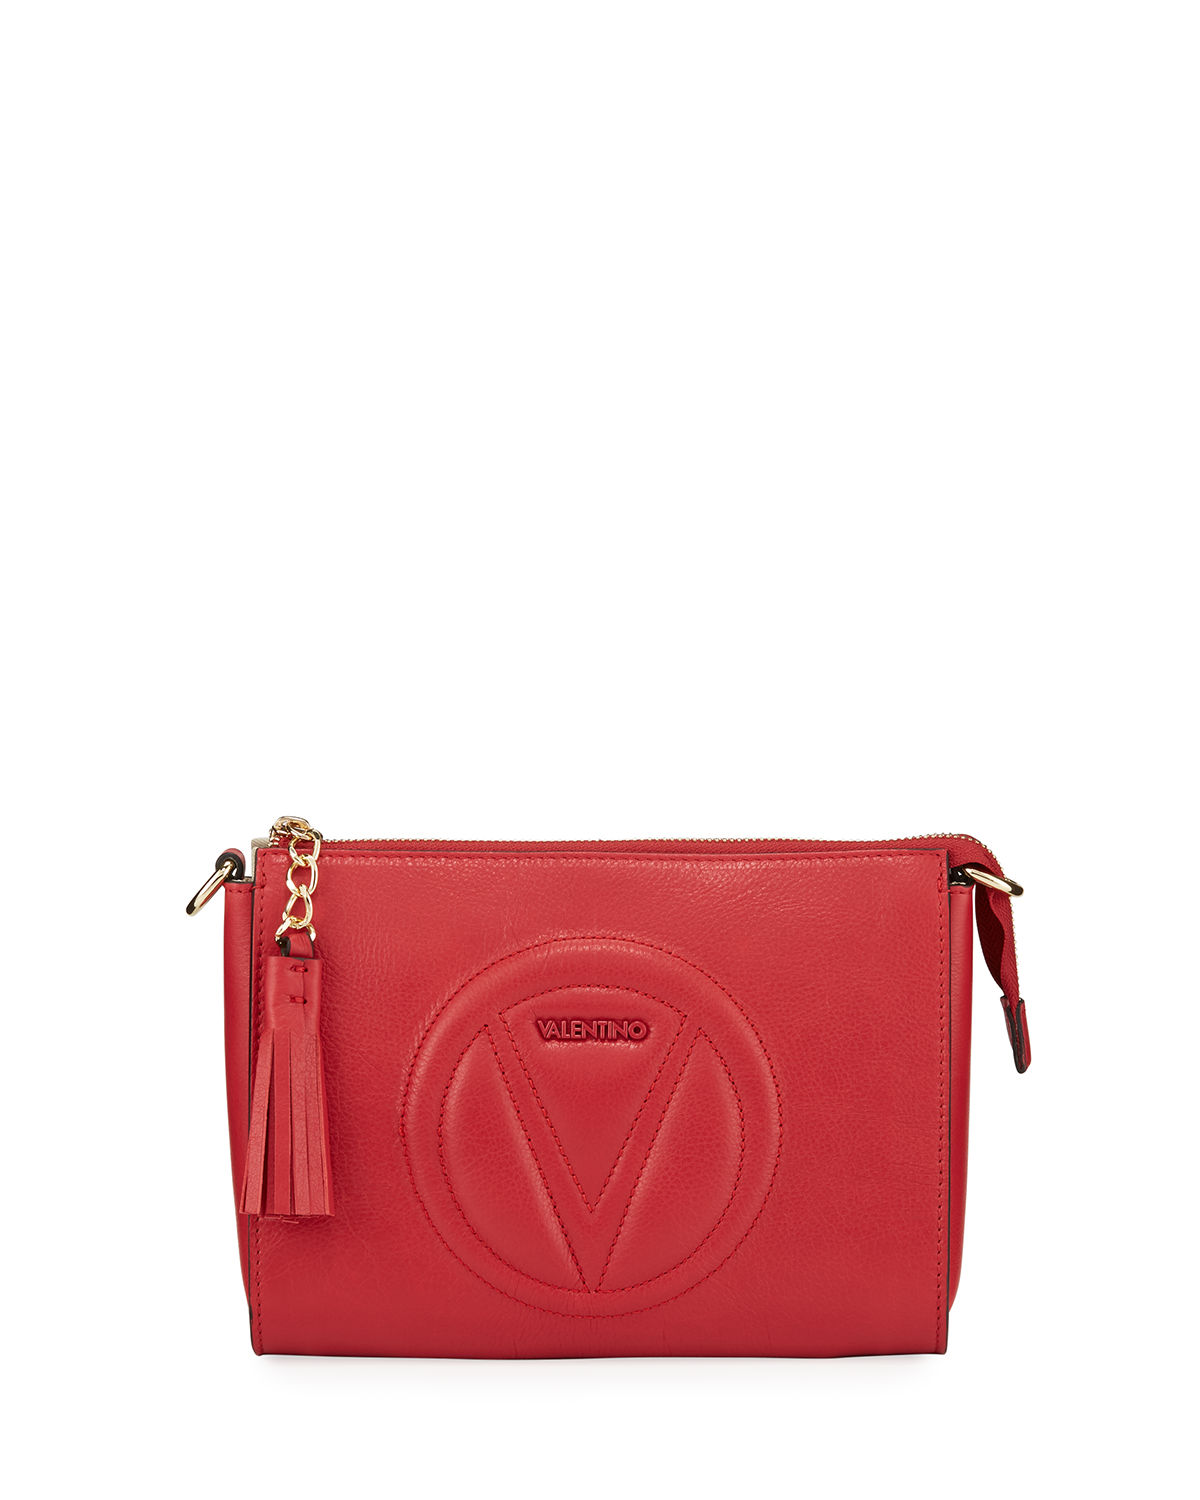 Valentino By Mario Valentino SUSANNE QUILTED LOGO LEATHER SHOULDER BAG